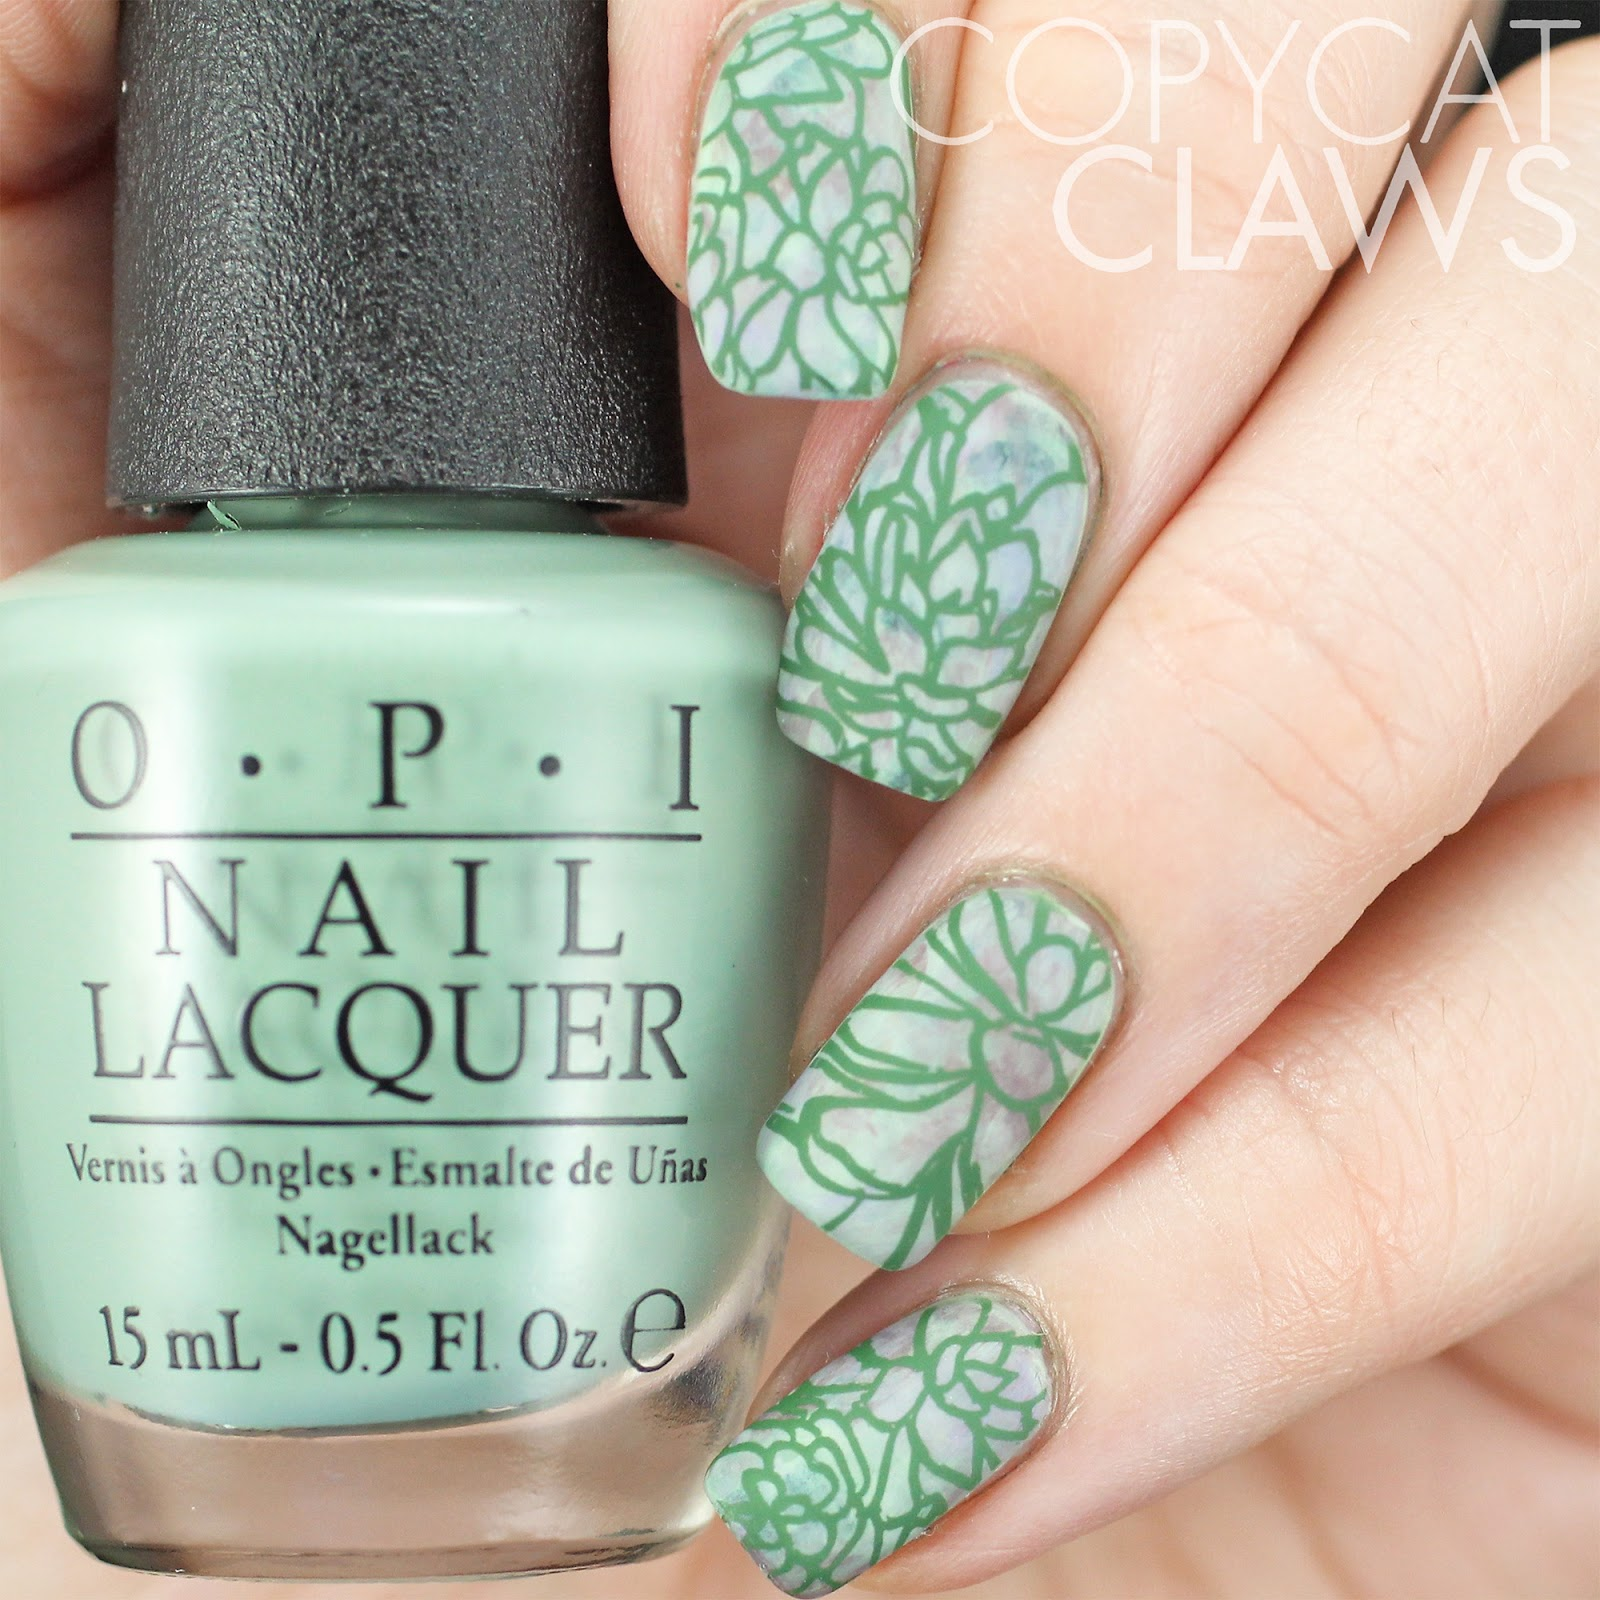 Copycat Claws: HPB Present Dusty Succulents with UberChic Beauty ...